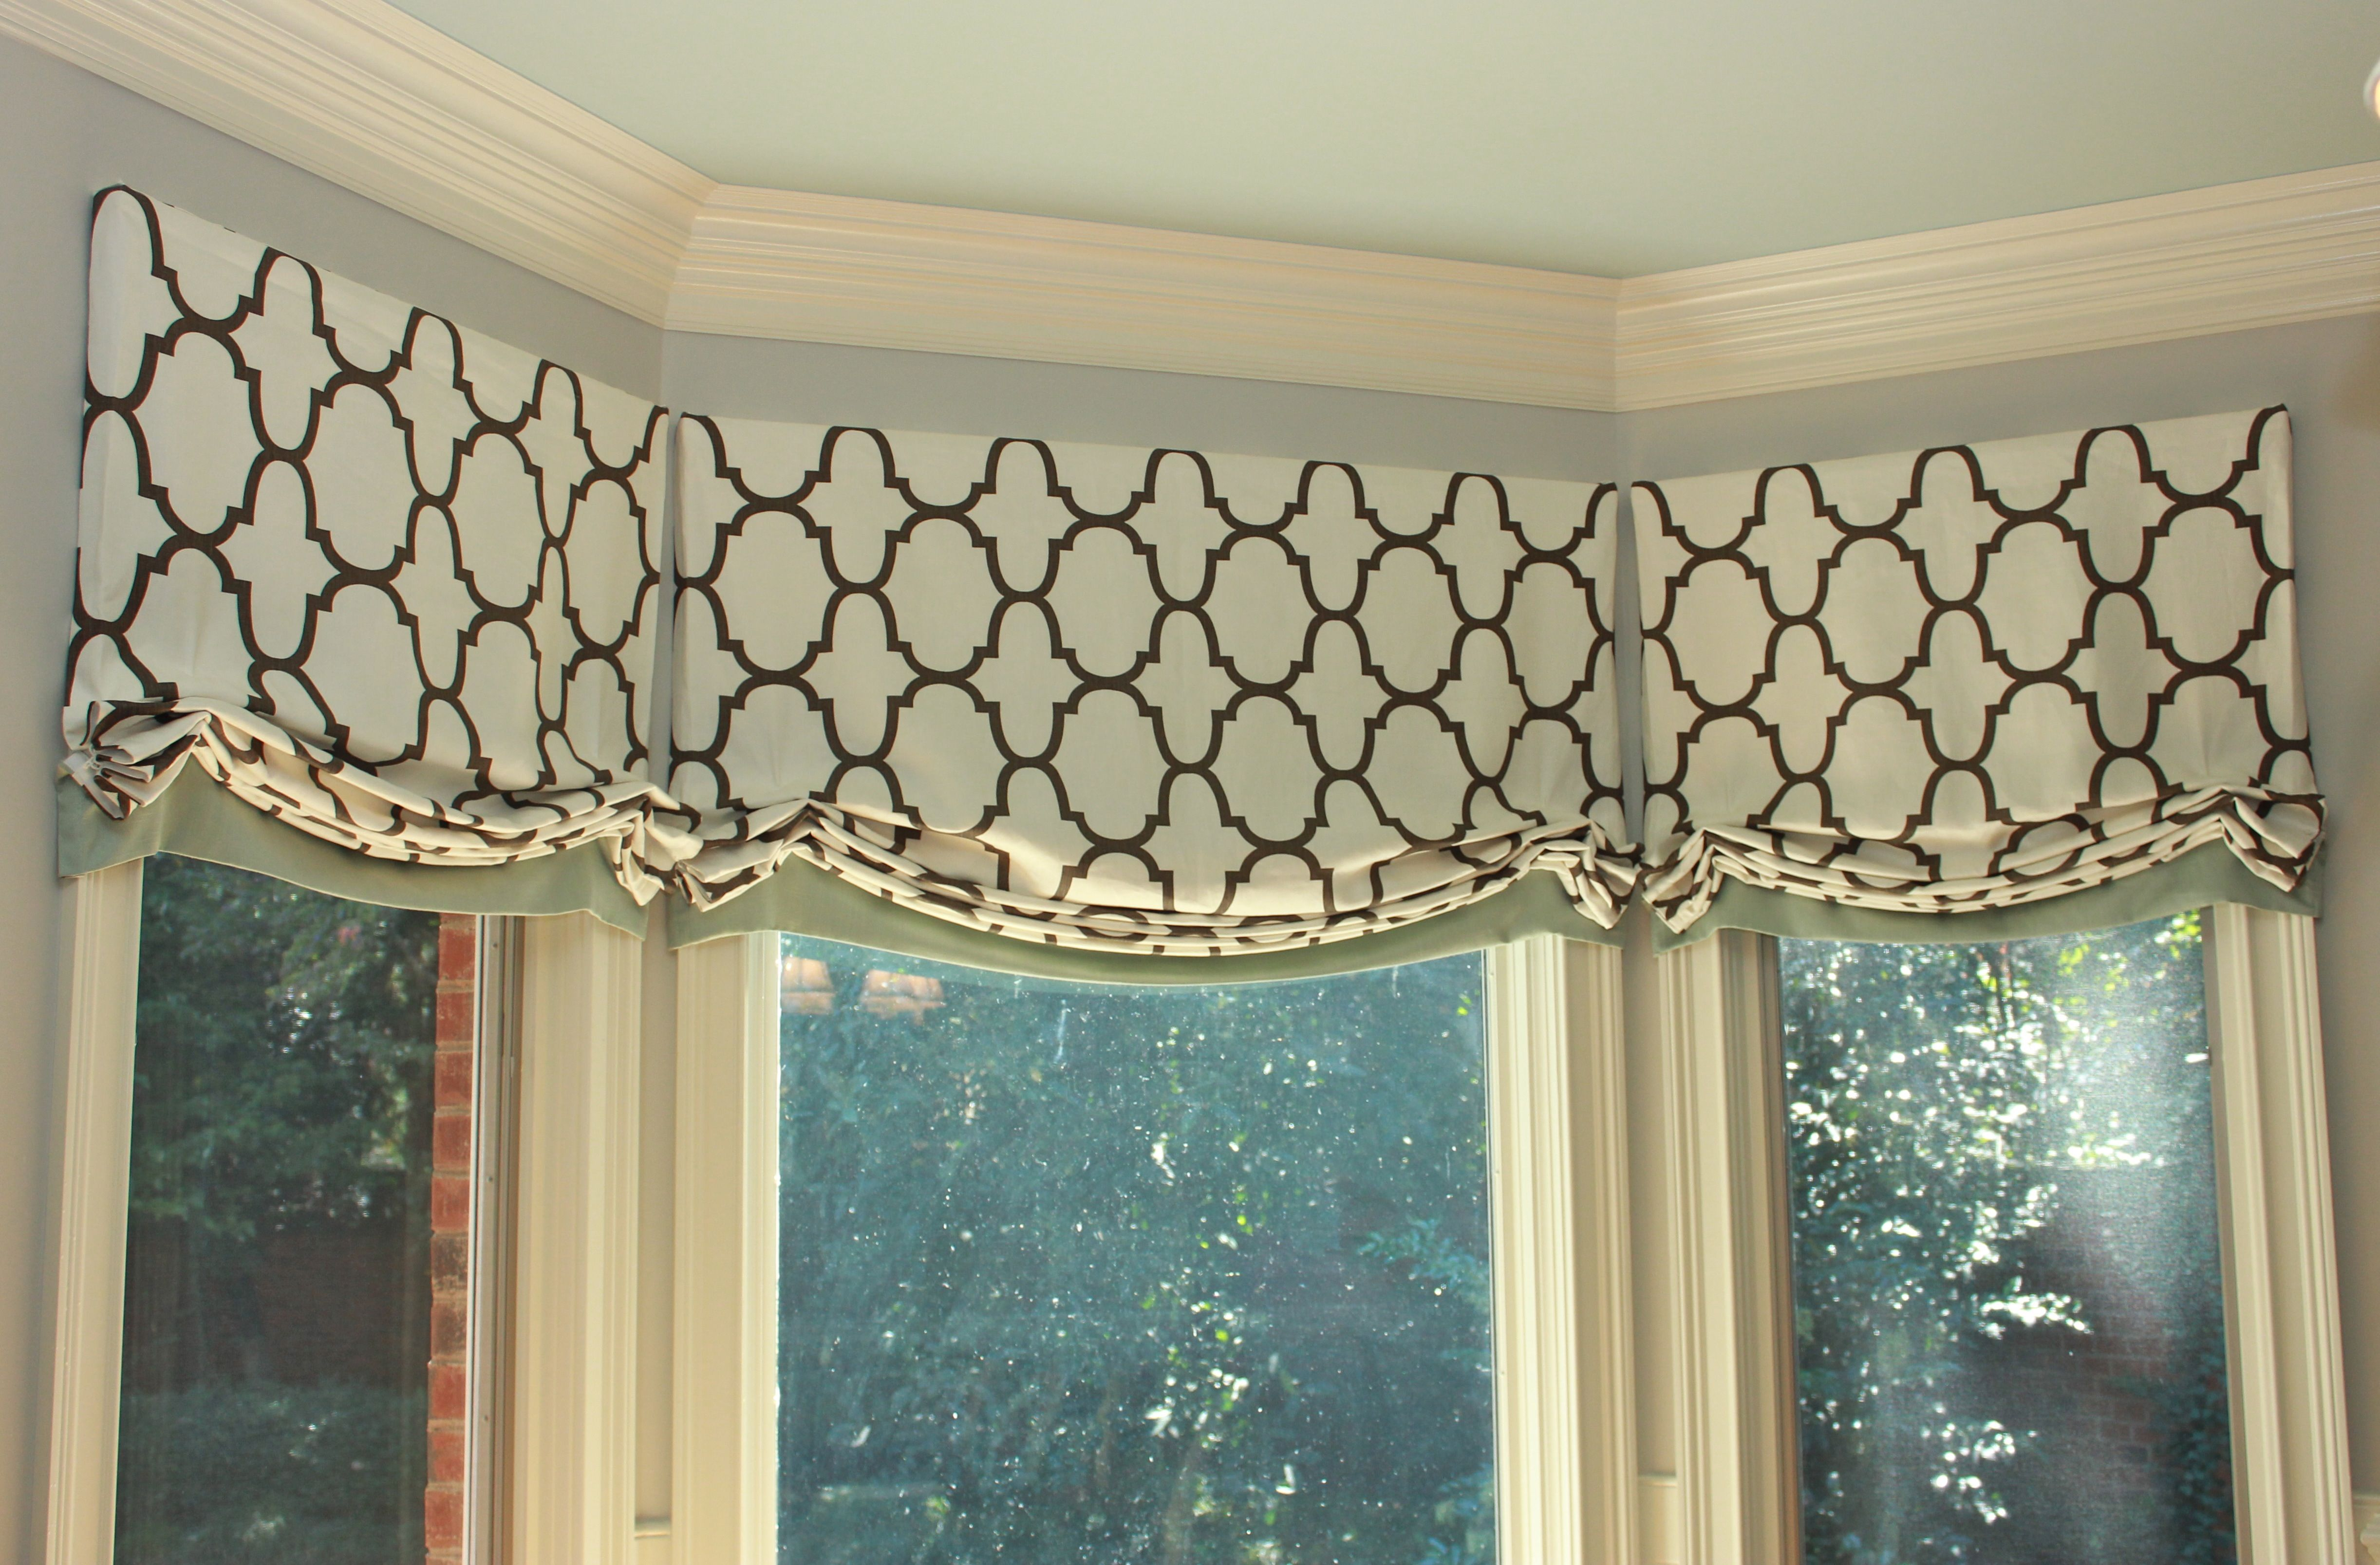 Custom Window Valances In Kravet S Quot Riad Quot Fabric By Www